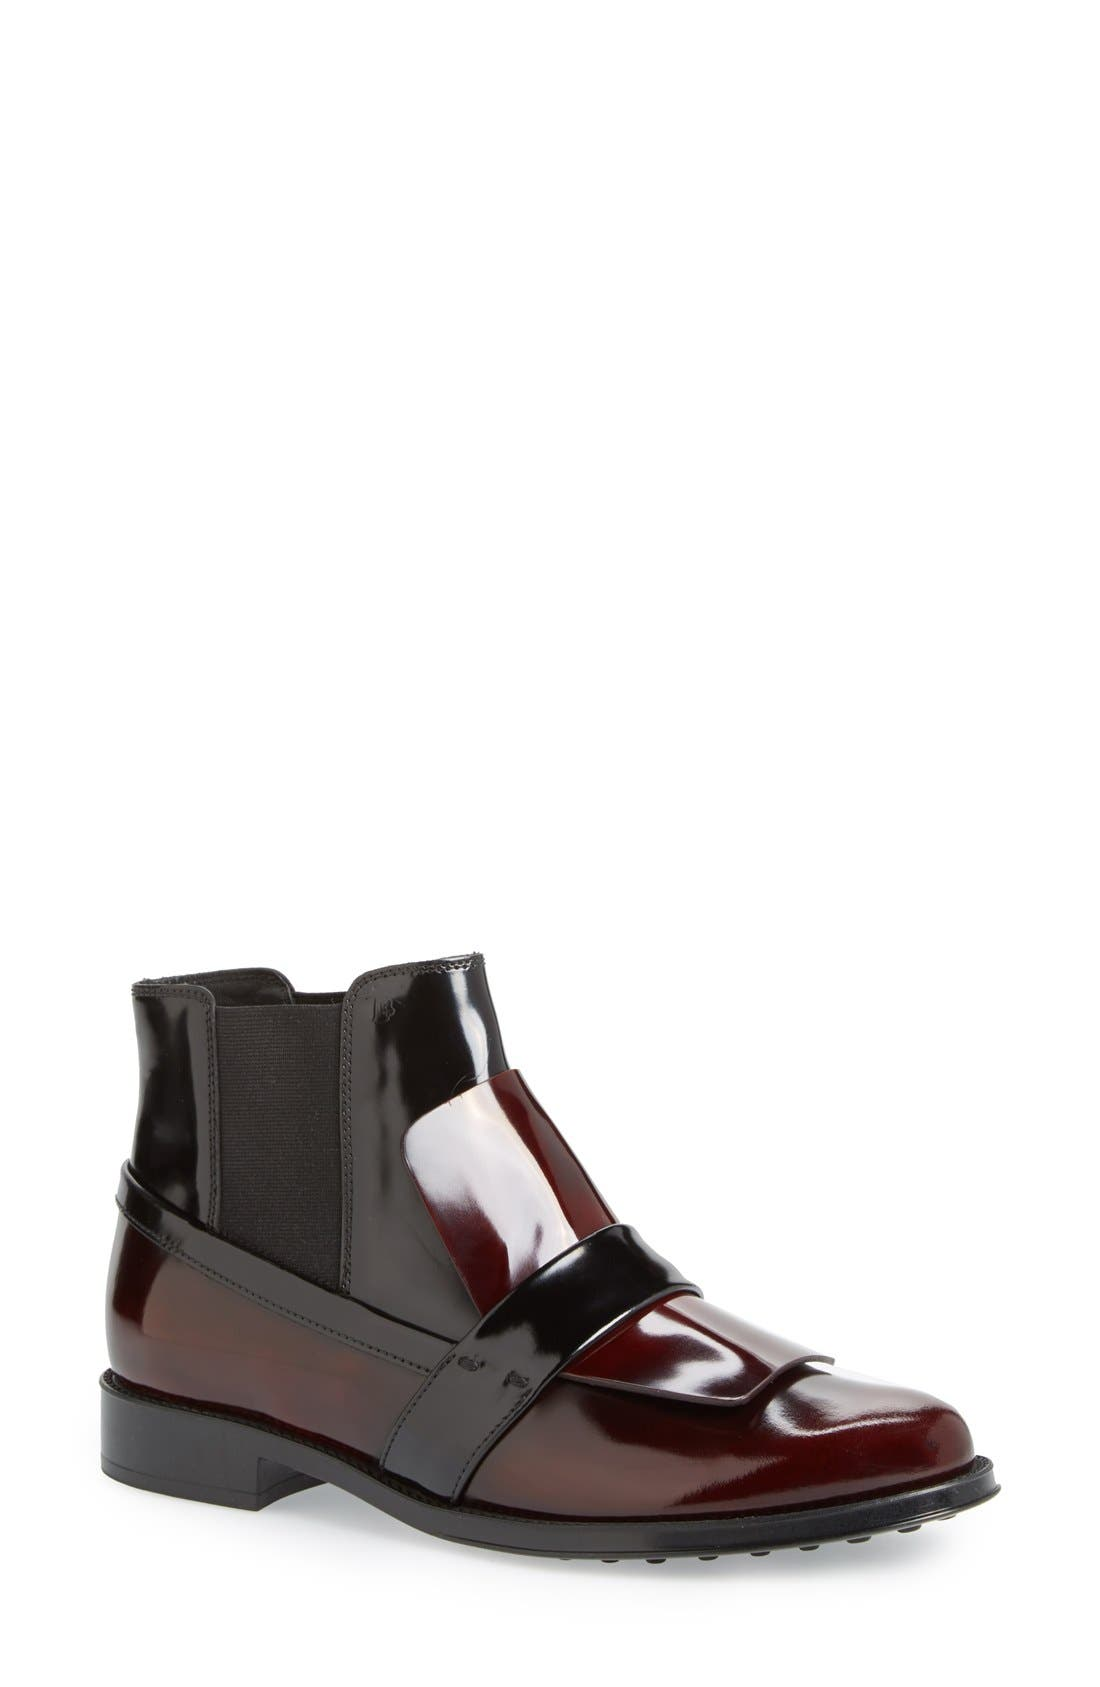 Main Image - Tod's Mask Chelsea Bootie (Women)